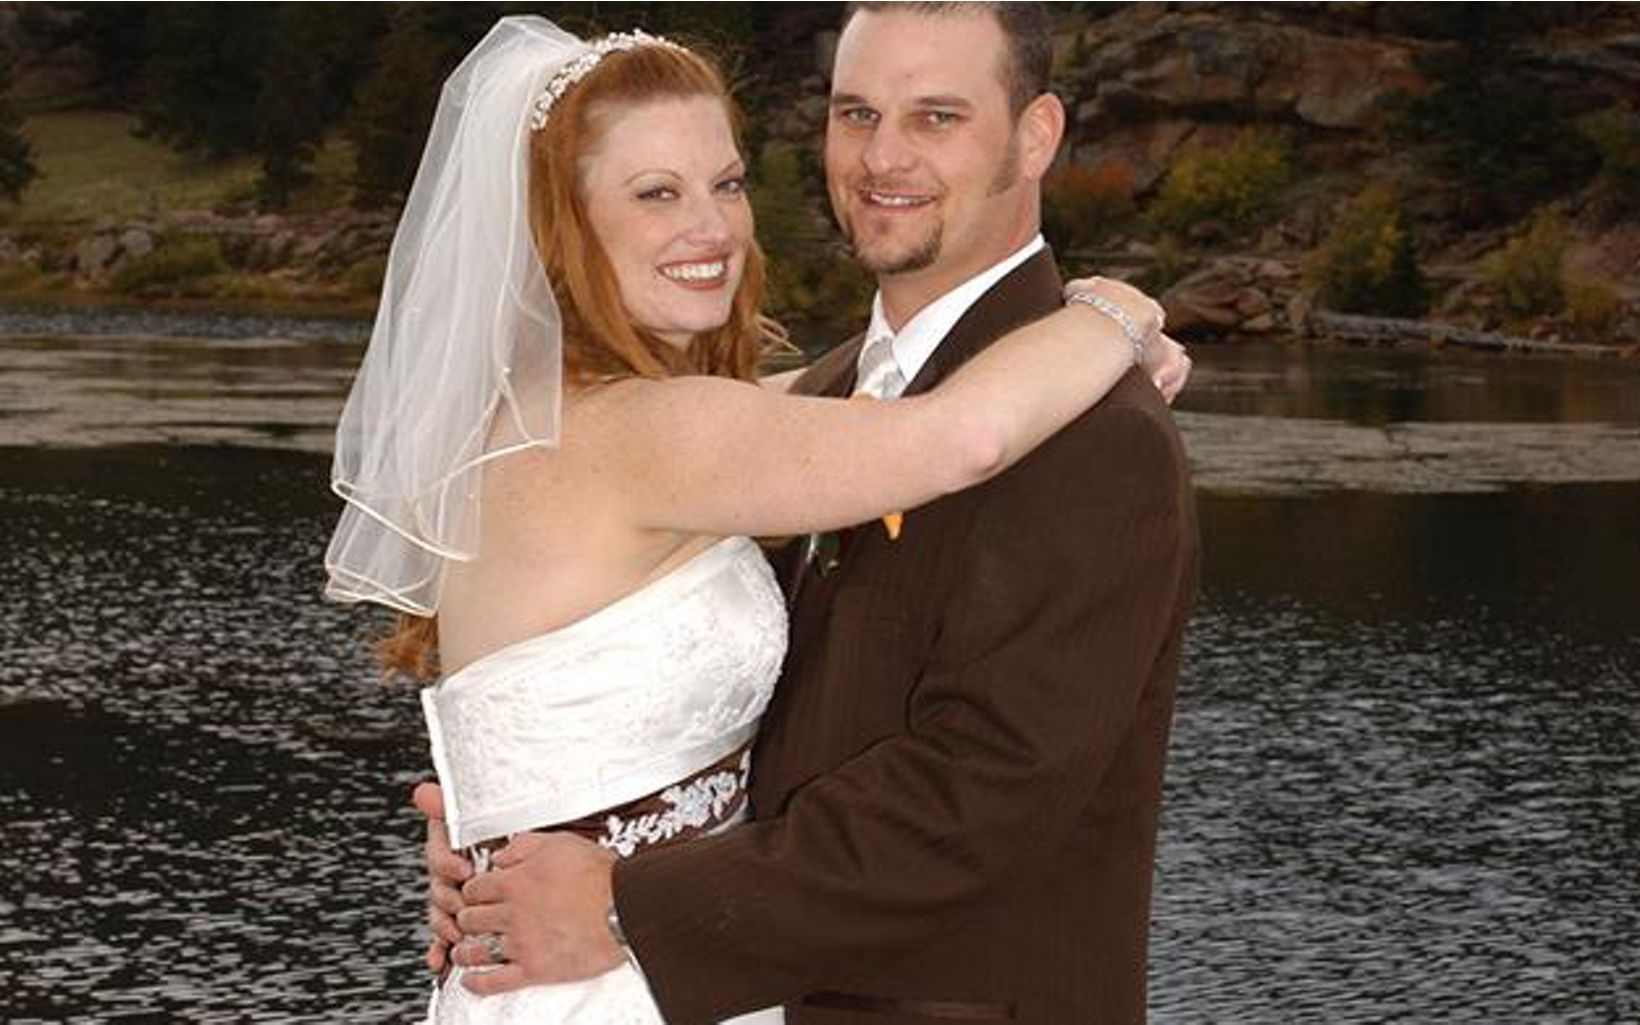 True to their passion, Jeremy and Amanda said their vows outside in Estes Park, CO.